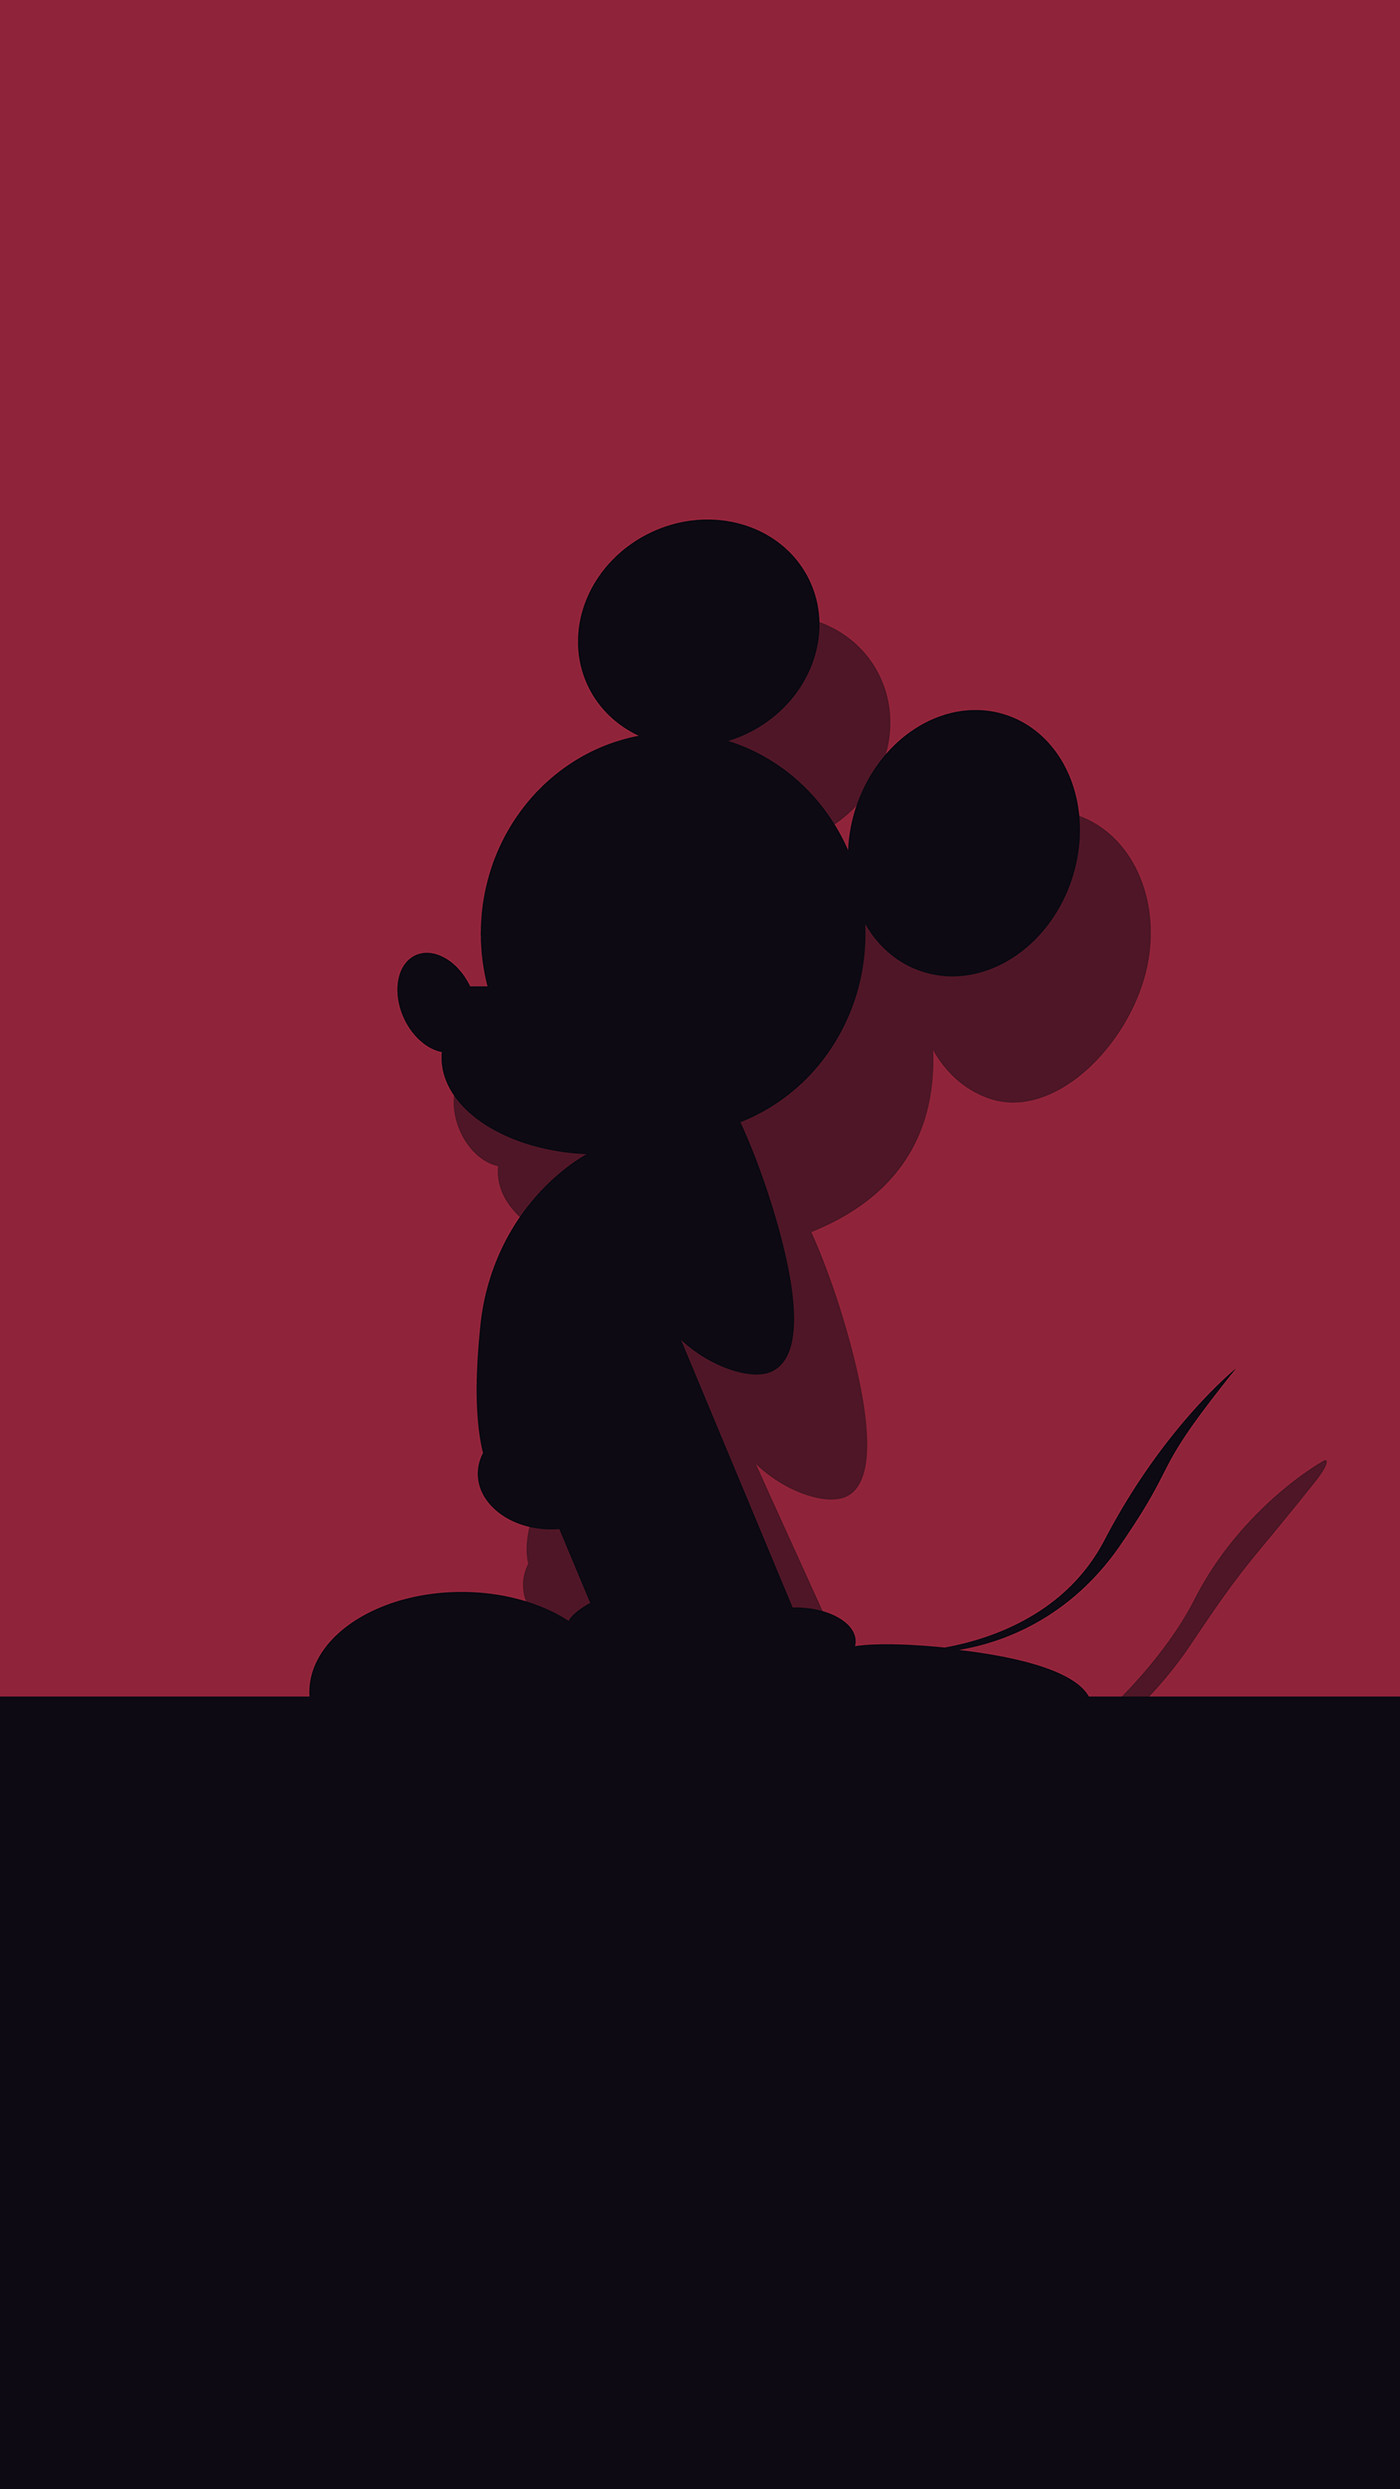 Free download 74 Mickey Christmas Wallpapers on WallpaperPlay [1400x2489]  for your Desktop, Mobile & Tablet | Explore 44+ Scary Mickey Mouse  Wallpapers | Scary Mickey Mouse Wallpapers, Mickey Mouse Background, Mickey  Mouse Wallpaper